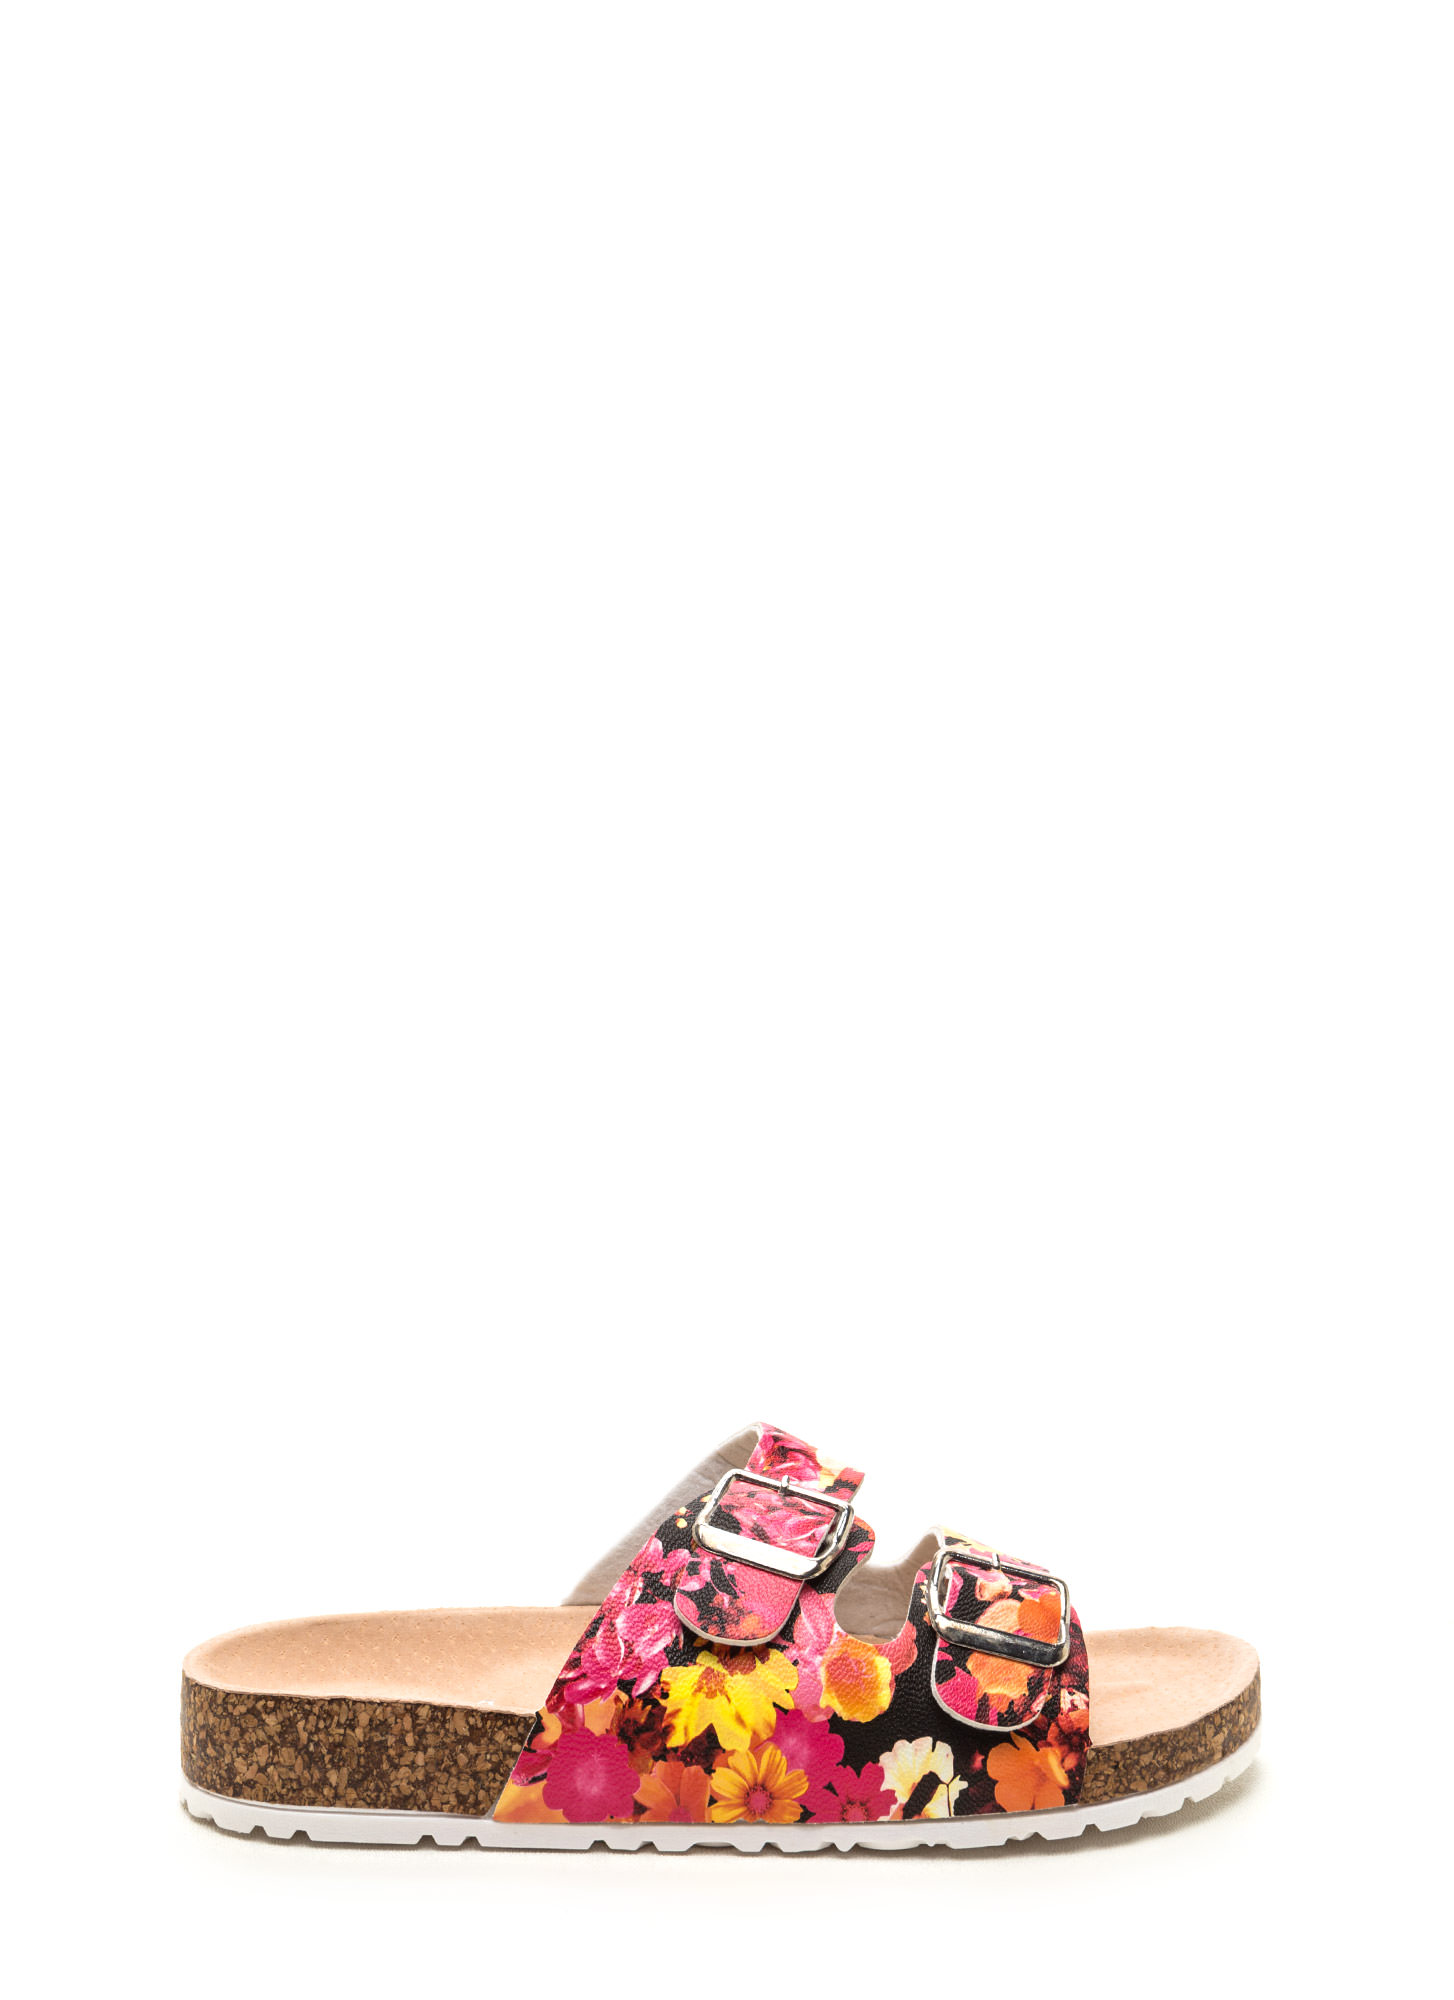 Two Become One Floral Slide Sandals BLACK